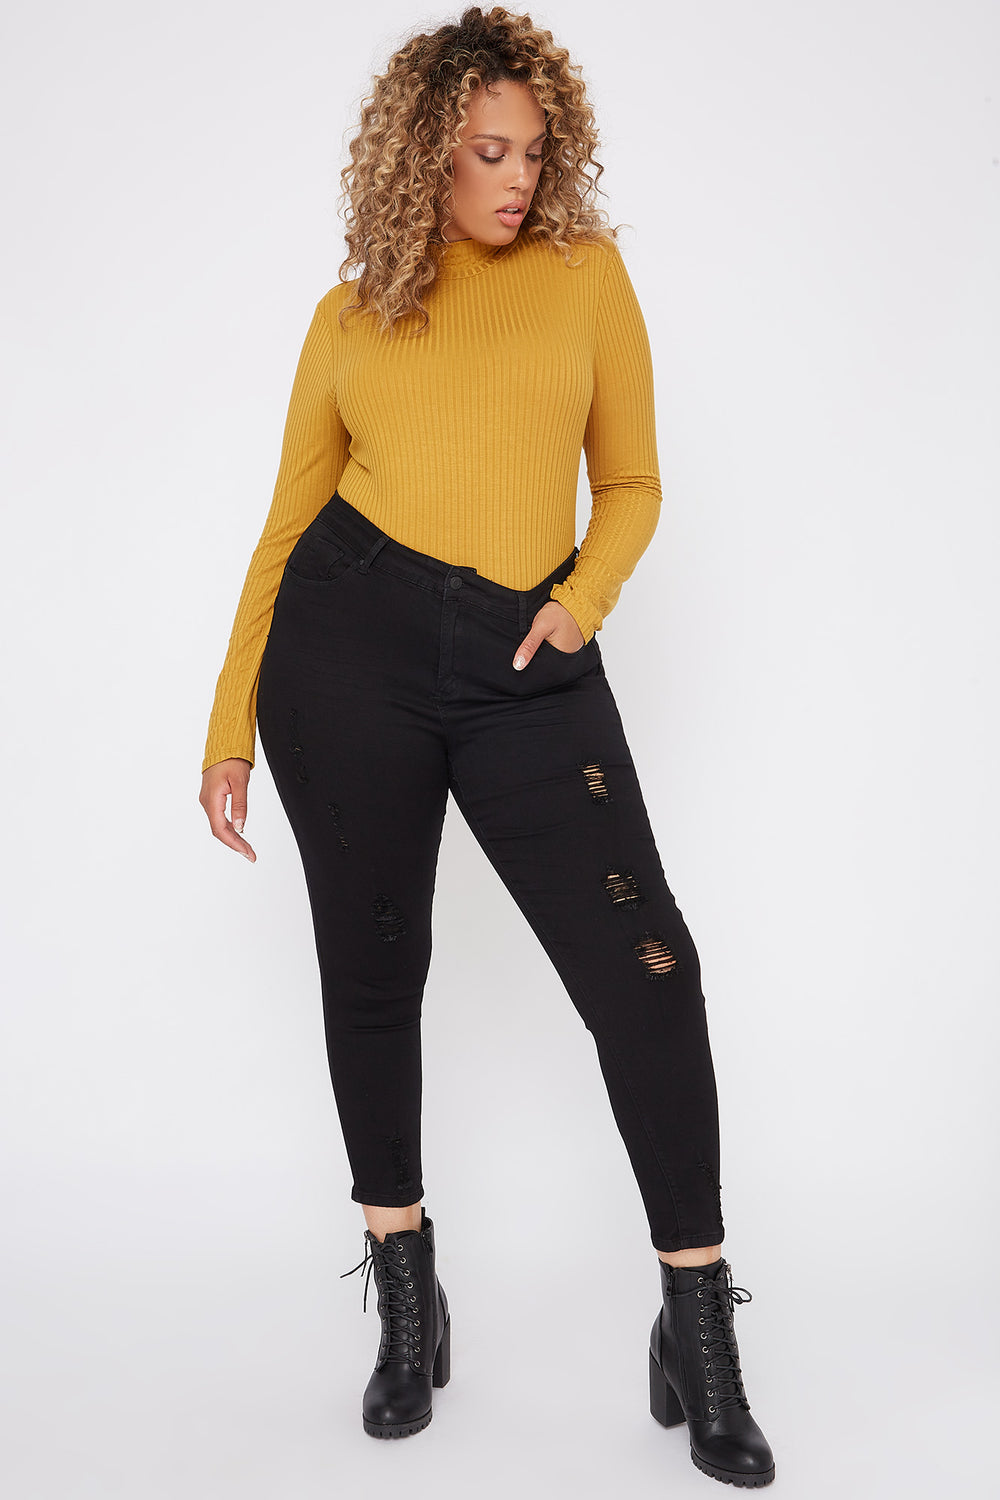 Plus Size Butt, I Love You High-Rise Distressed Push-Up Cropped Skinny Jean Black